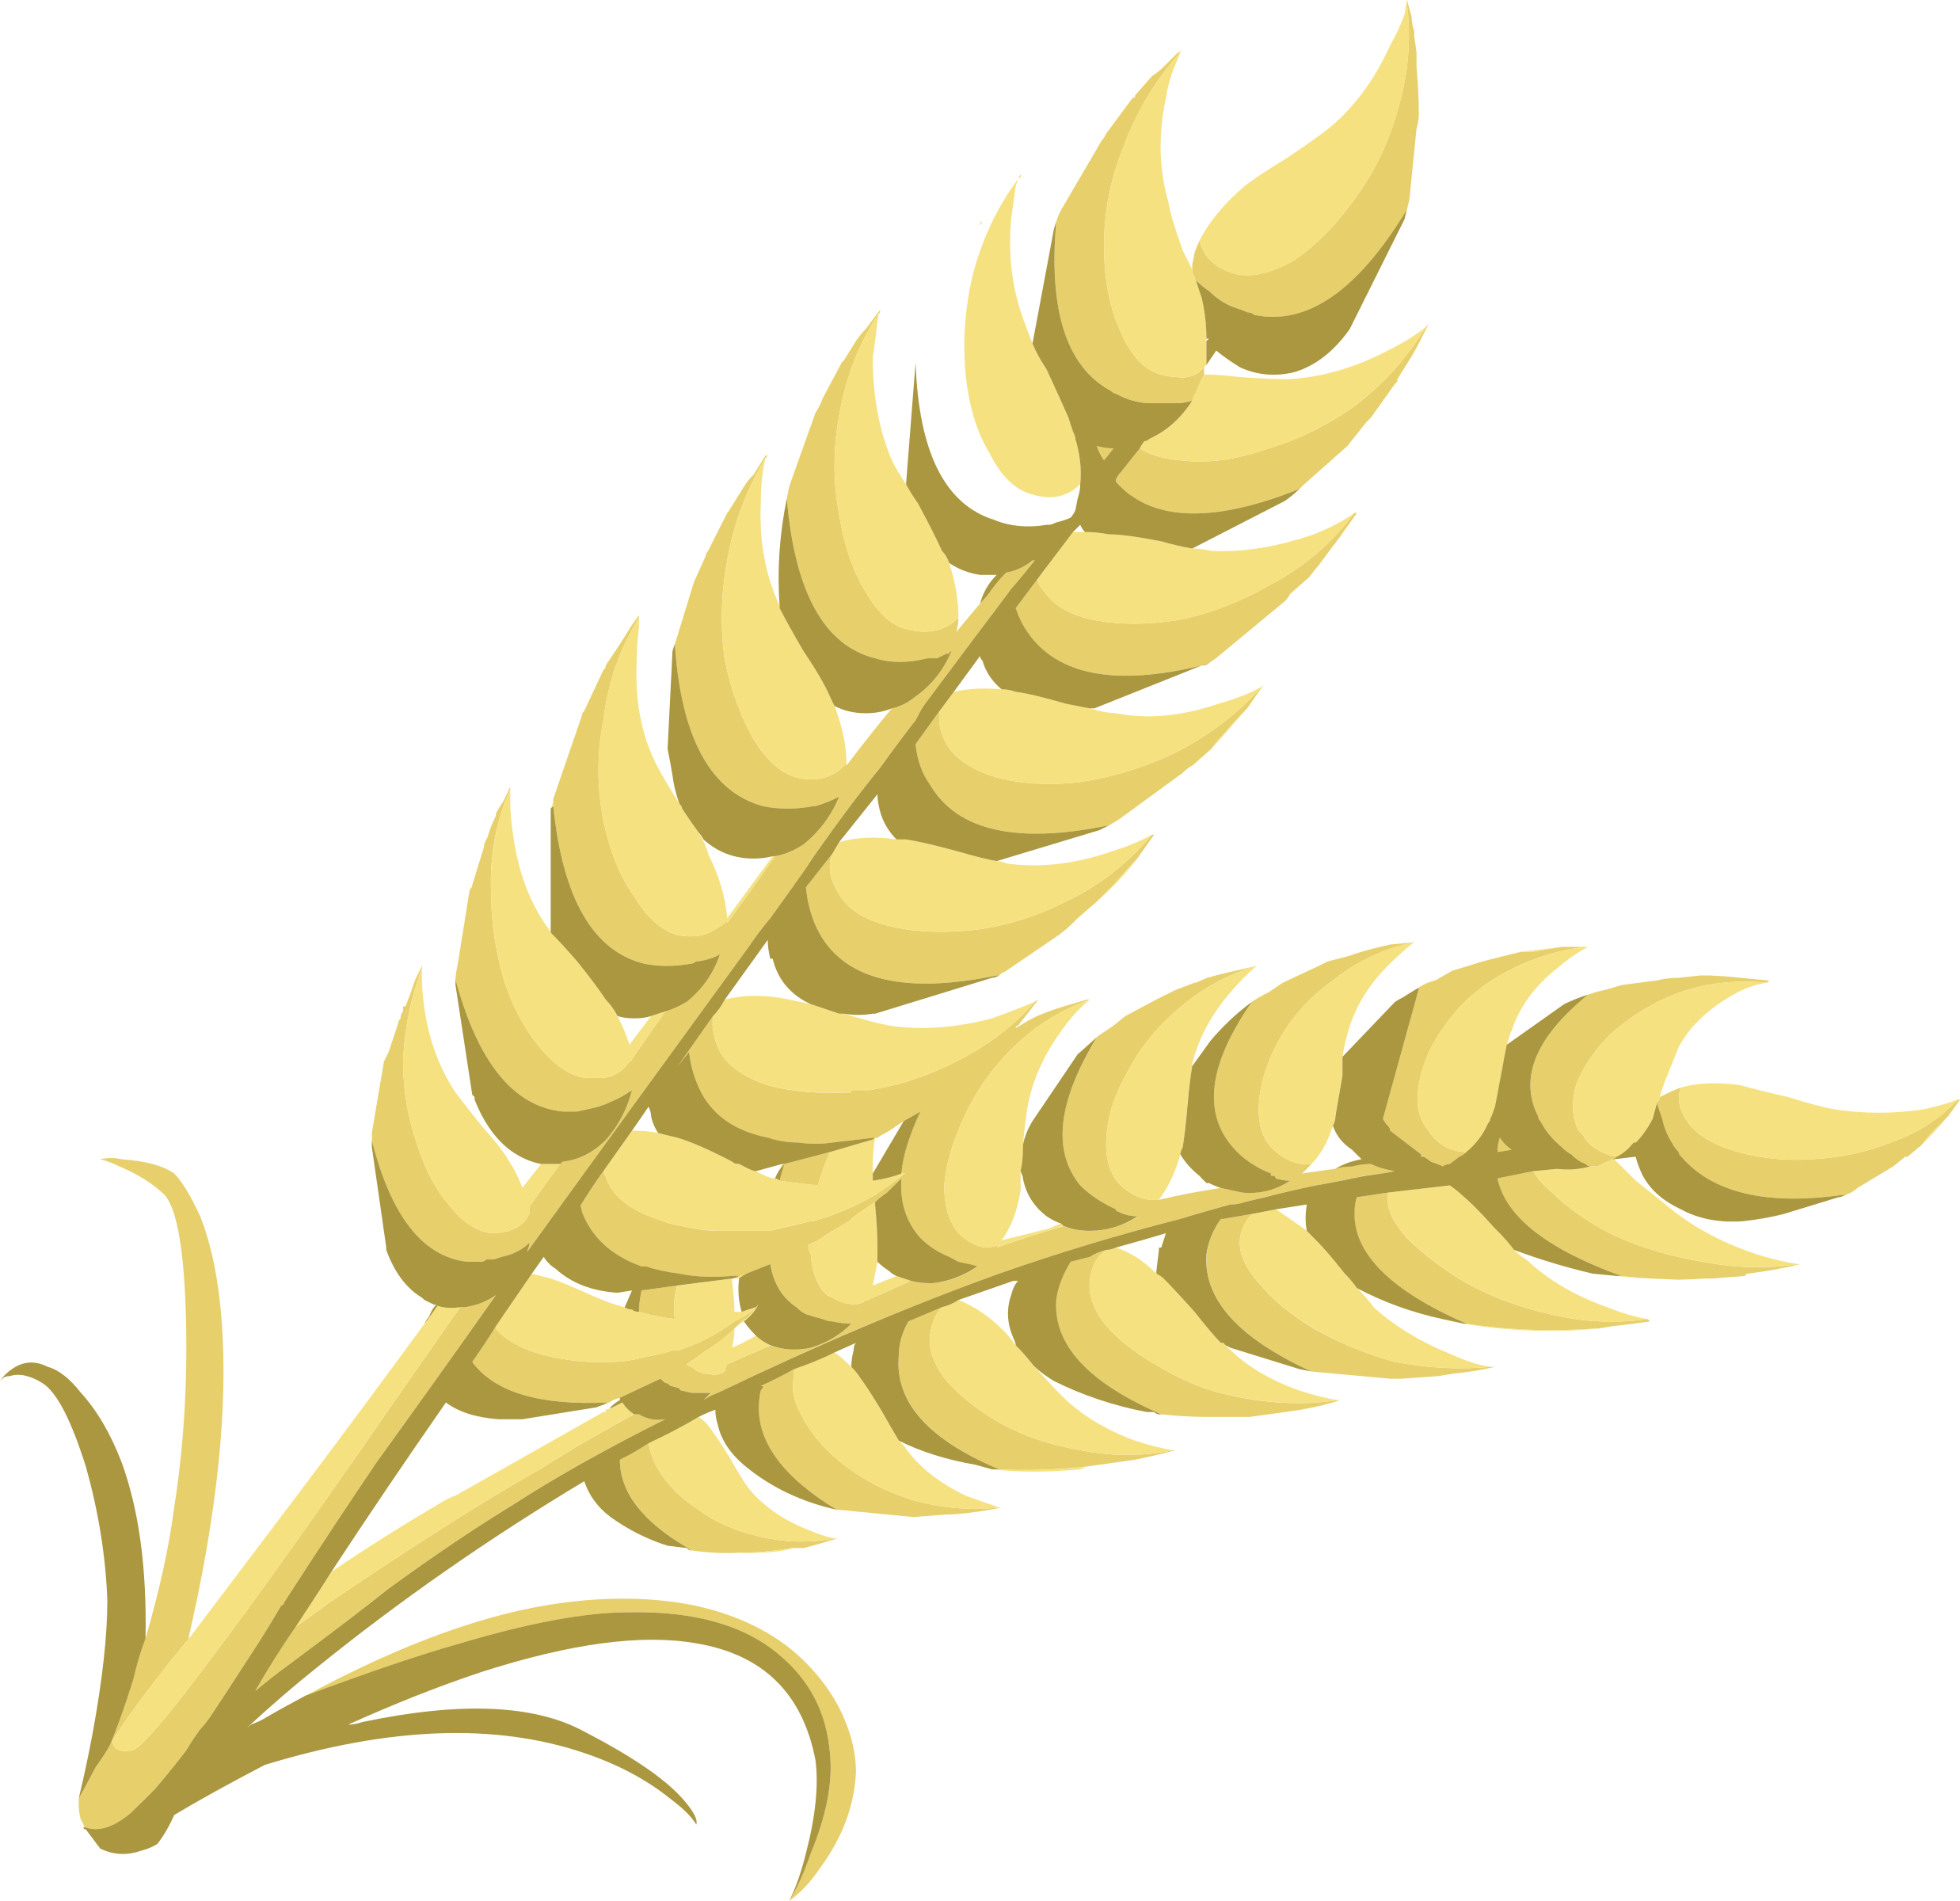 Wheat clipart hop, Wheat hop Transparent FREE for download.